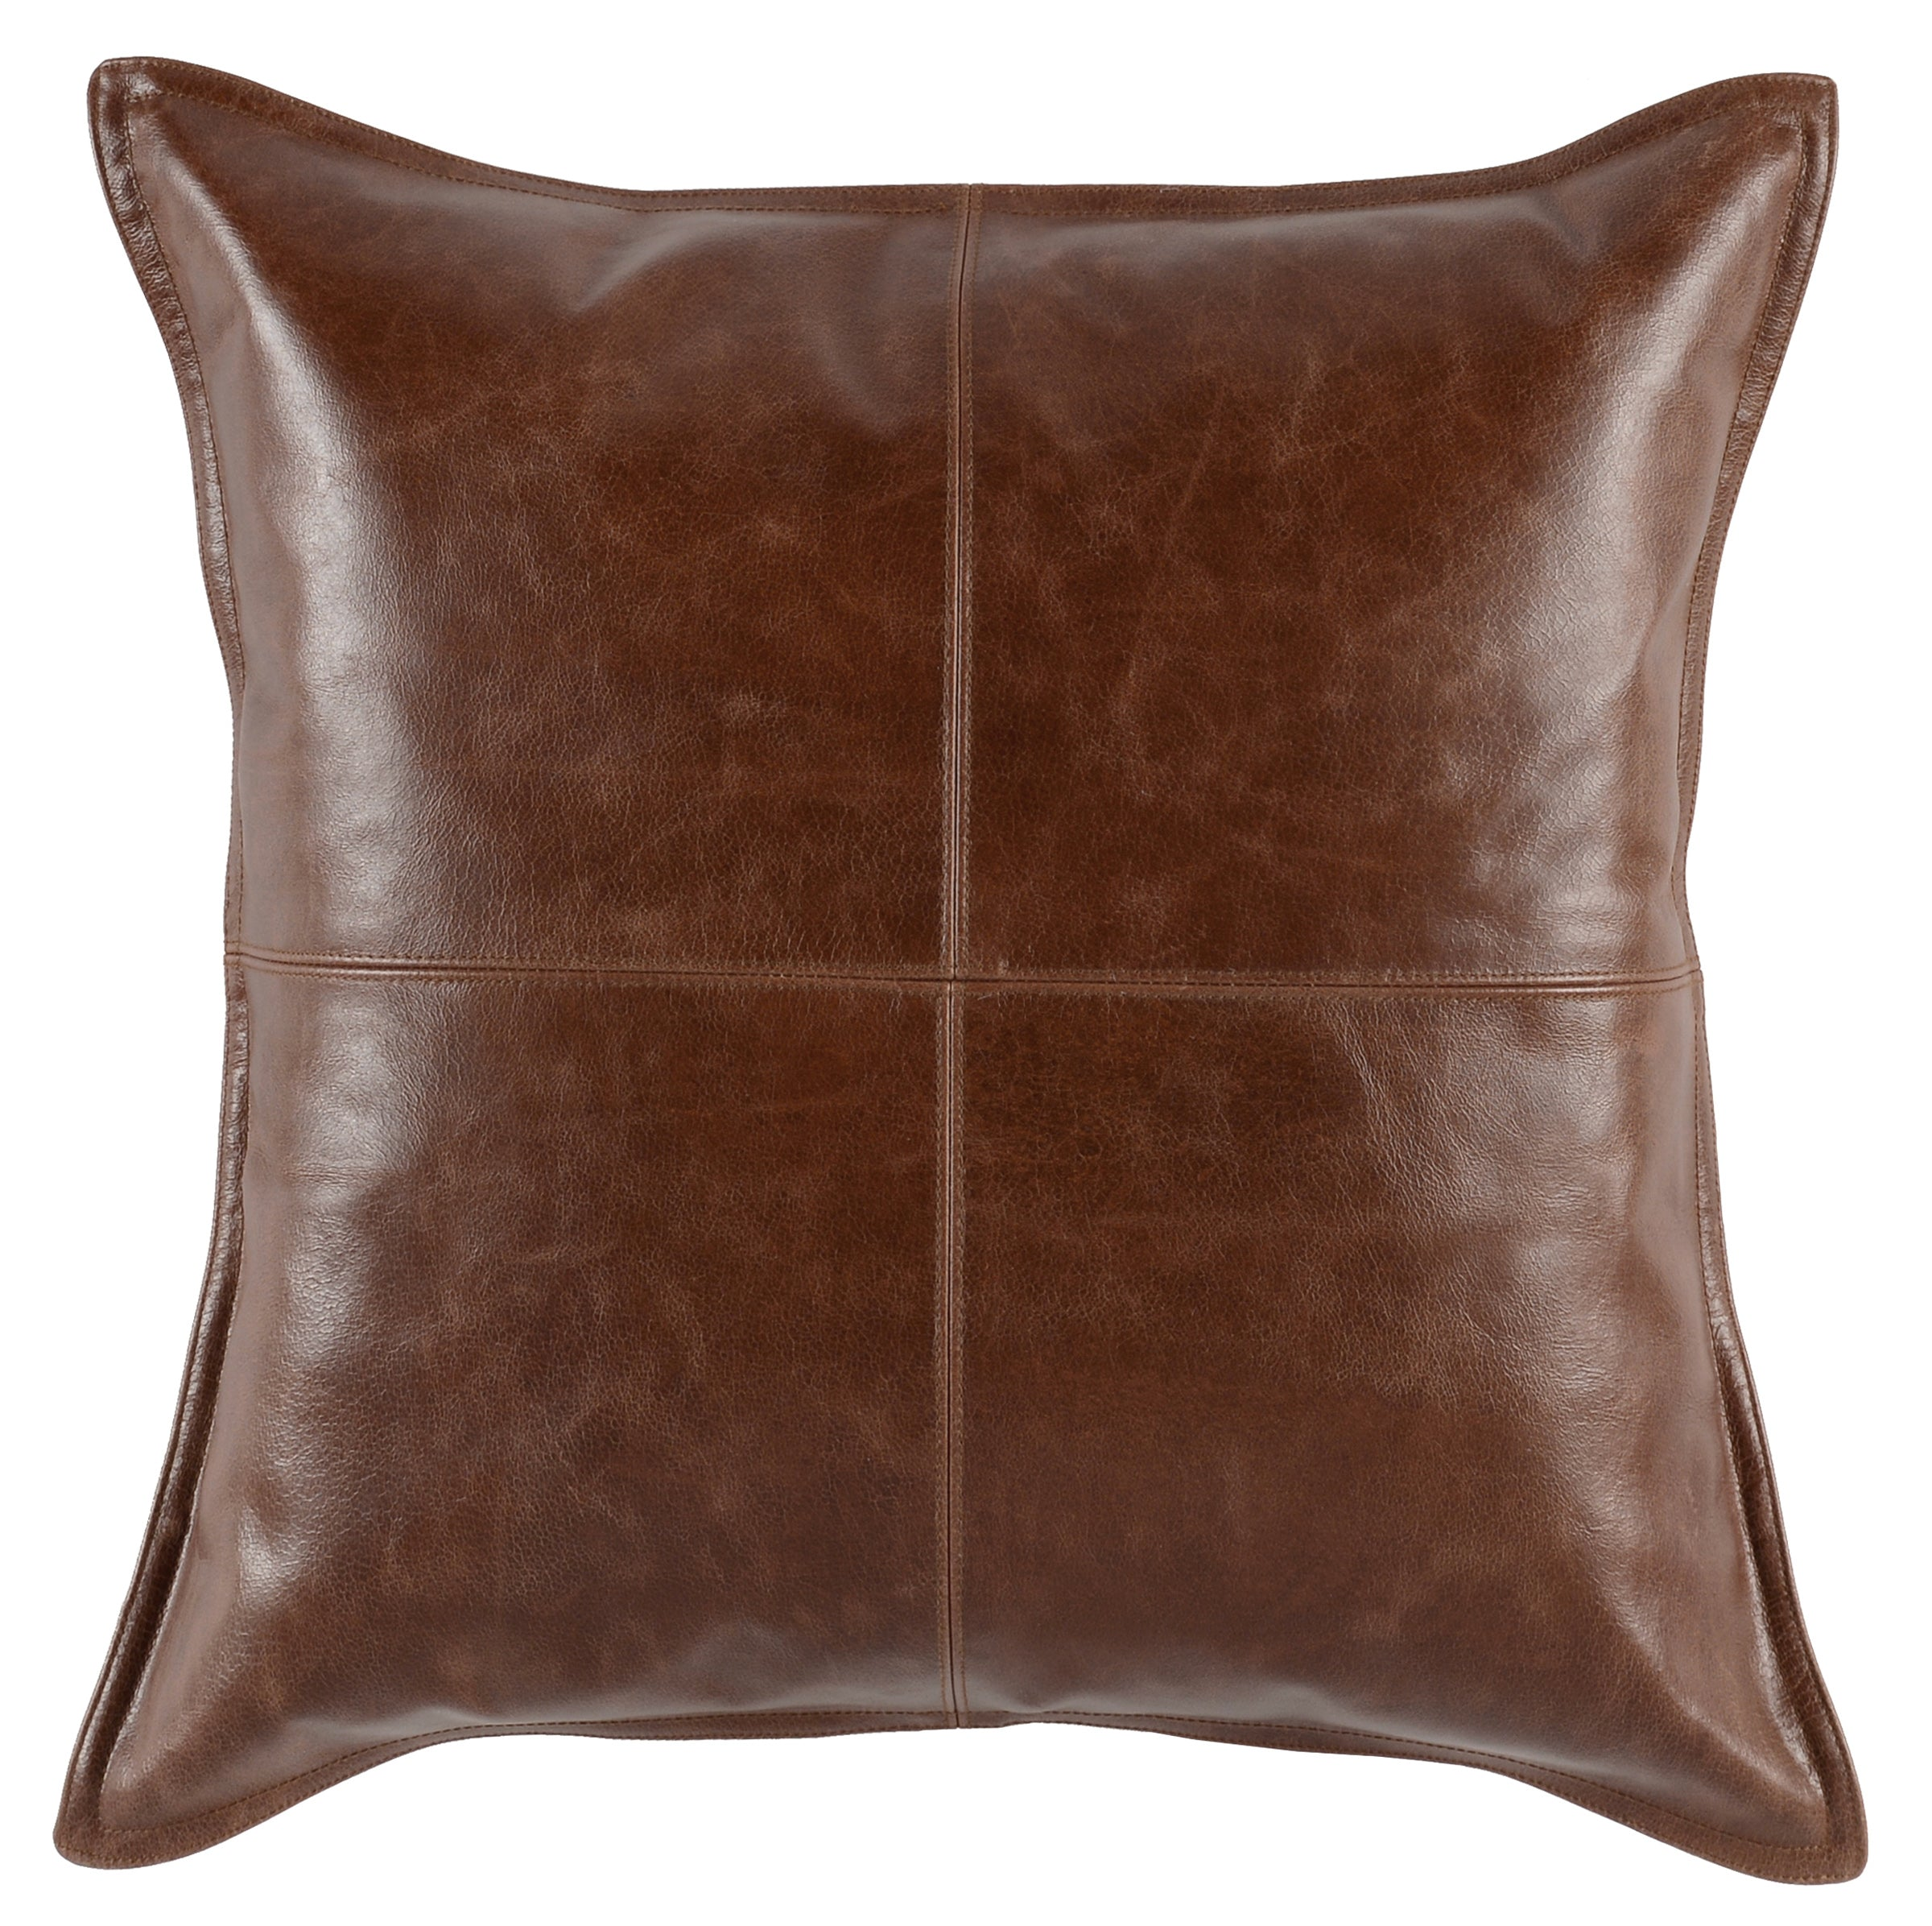 "Leather Kona Brown 22"" Pillow"